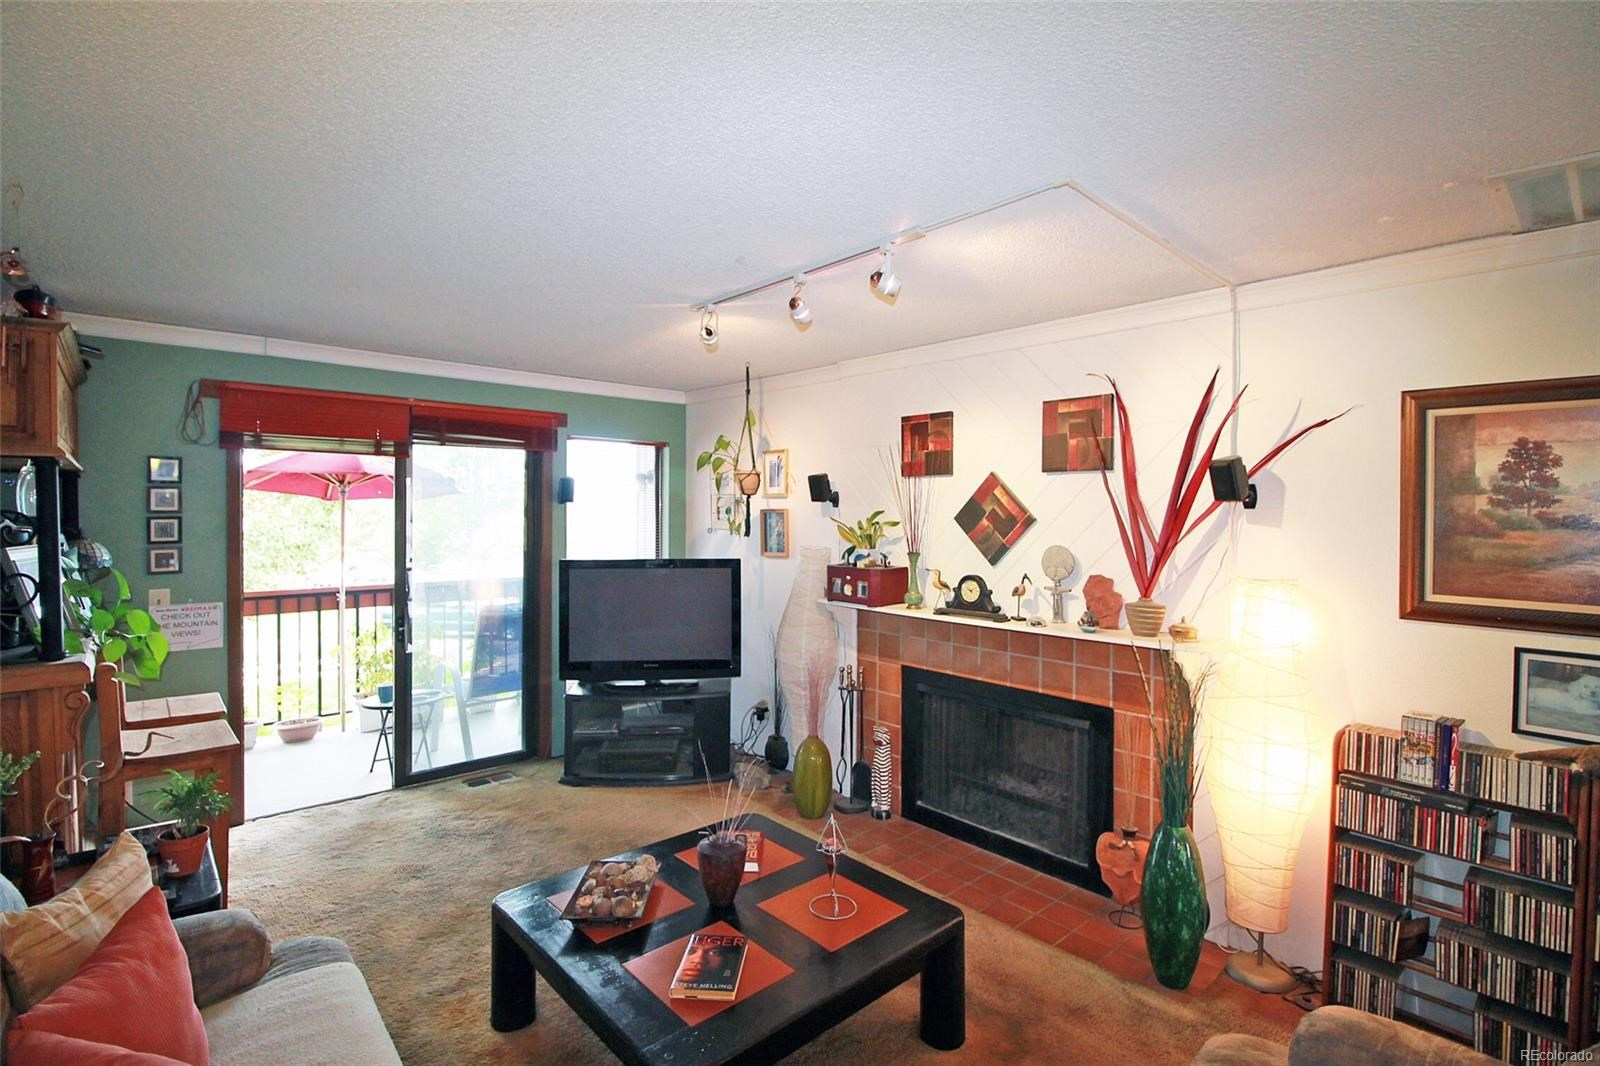 MLS# 4923129 - 5 - 2760 W 86th Avenue #149, Westminster, CO 80031